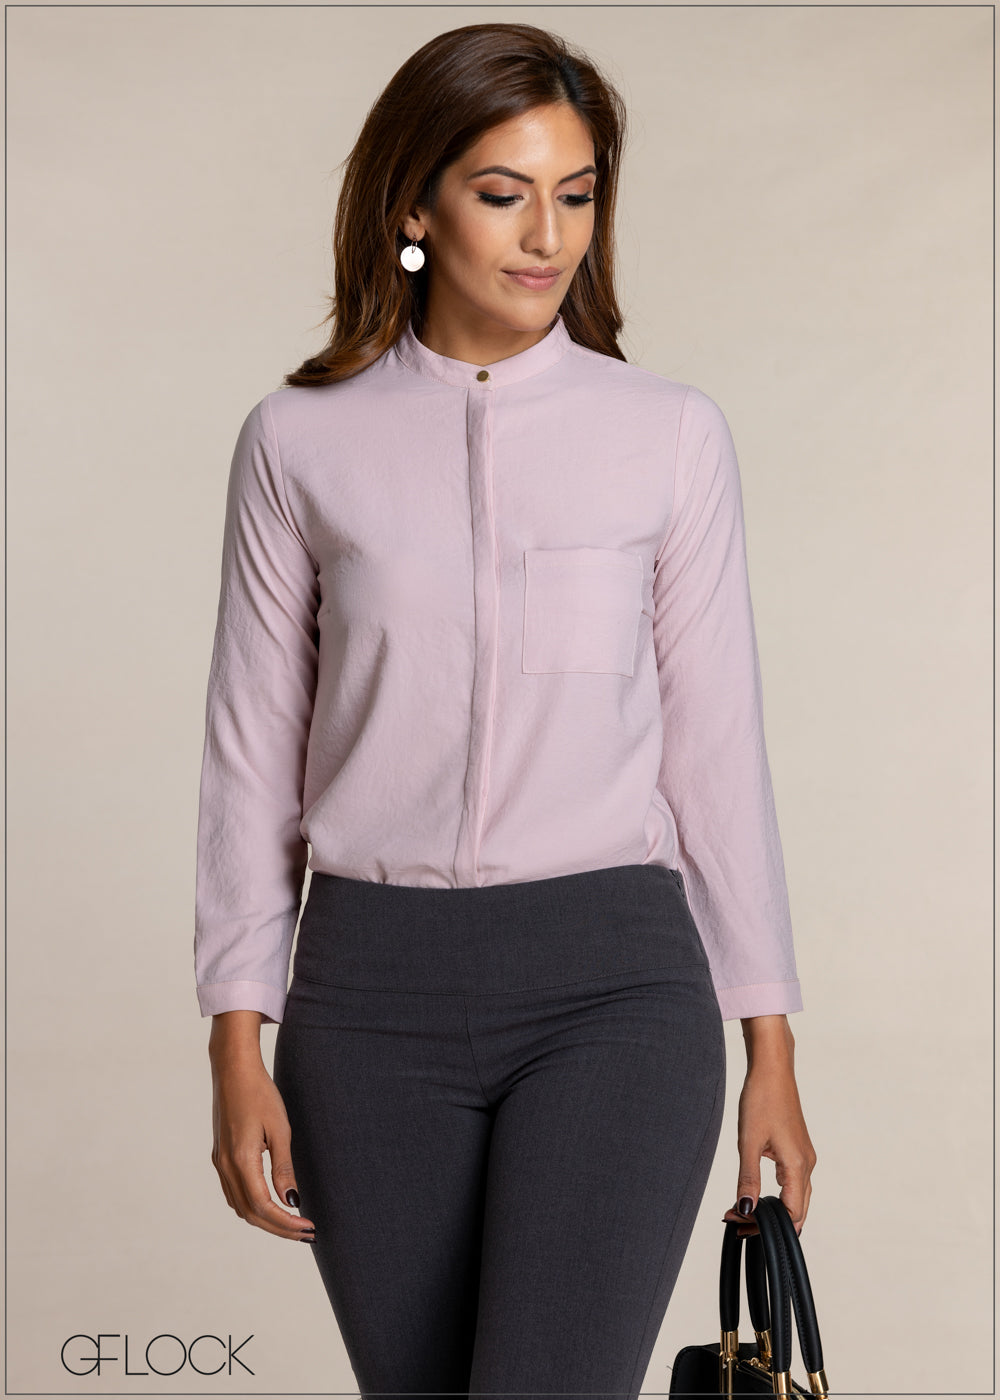 Single Pocket Basic Workwear Top